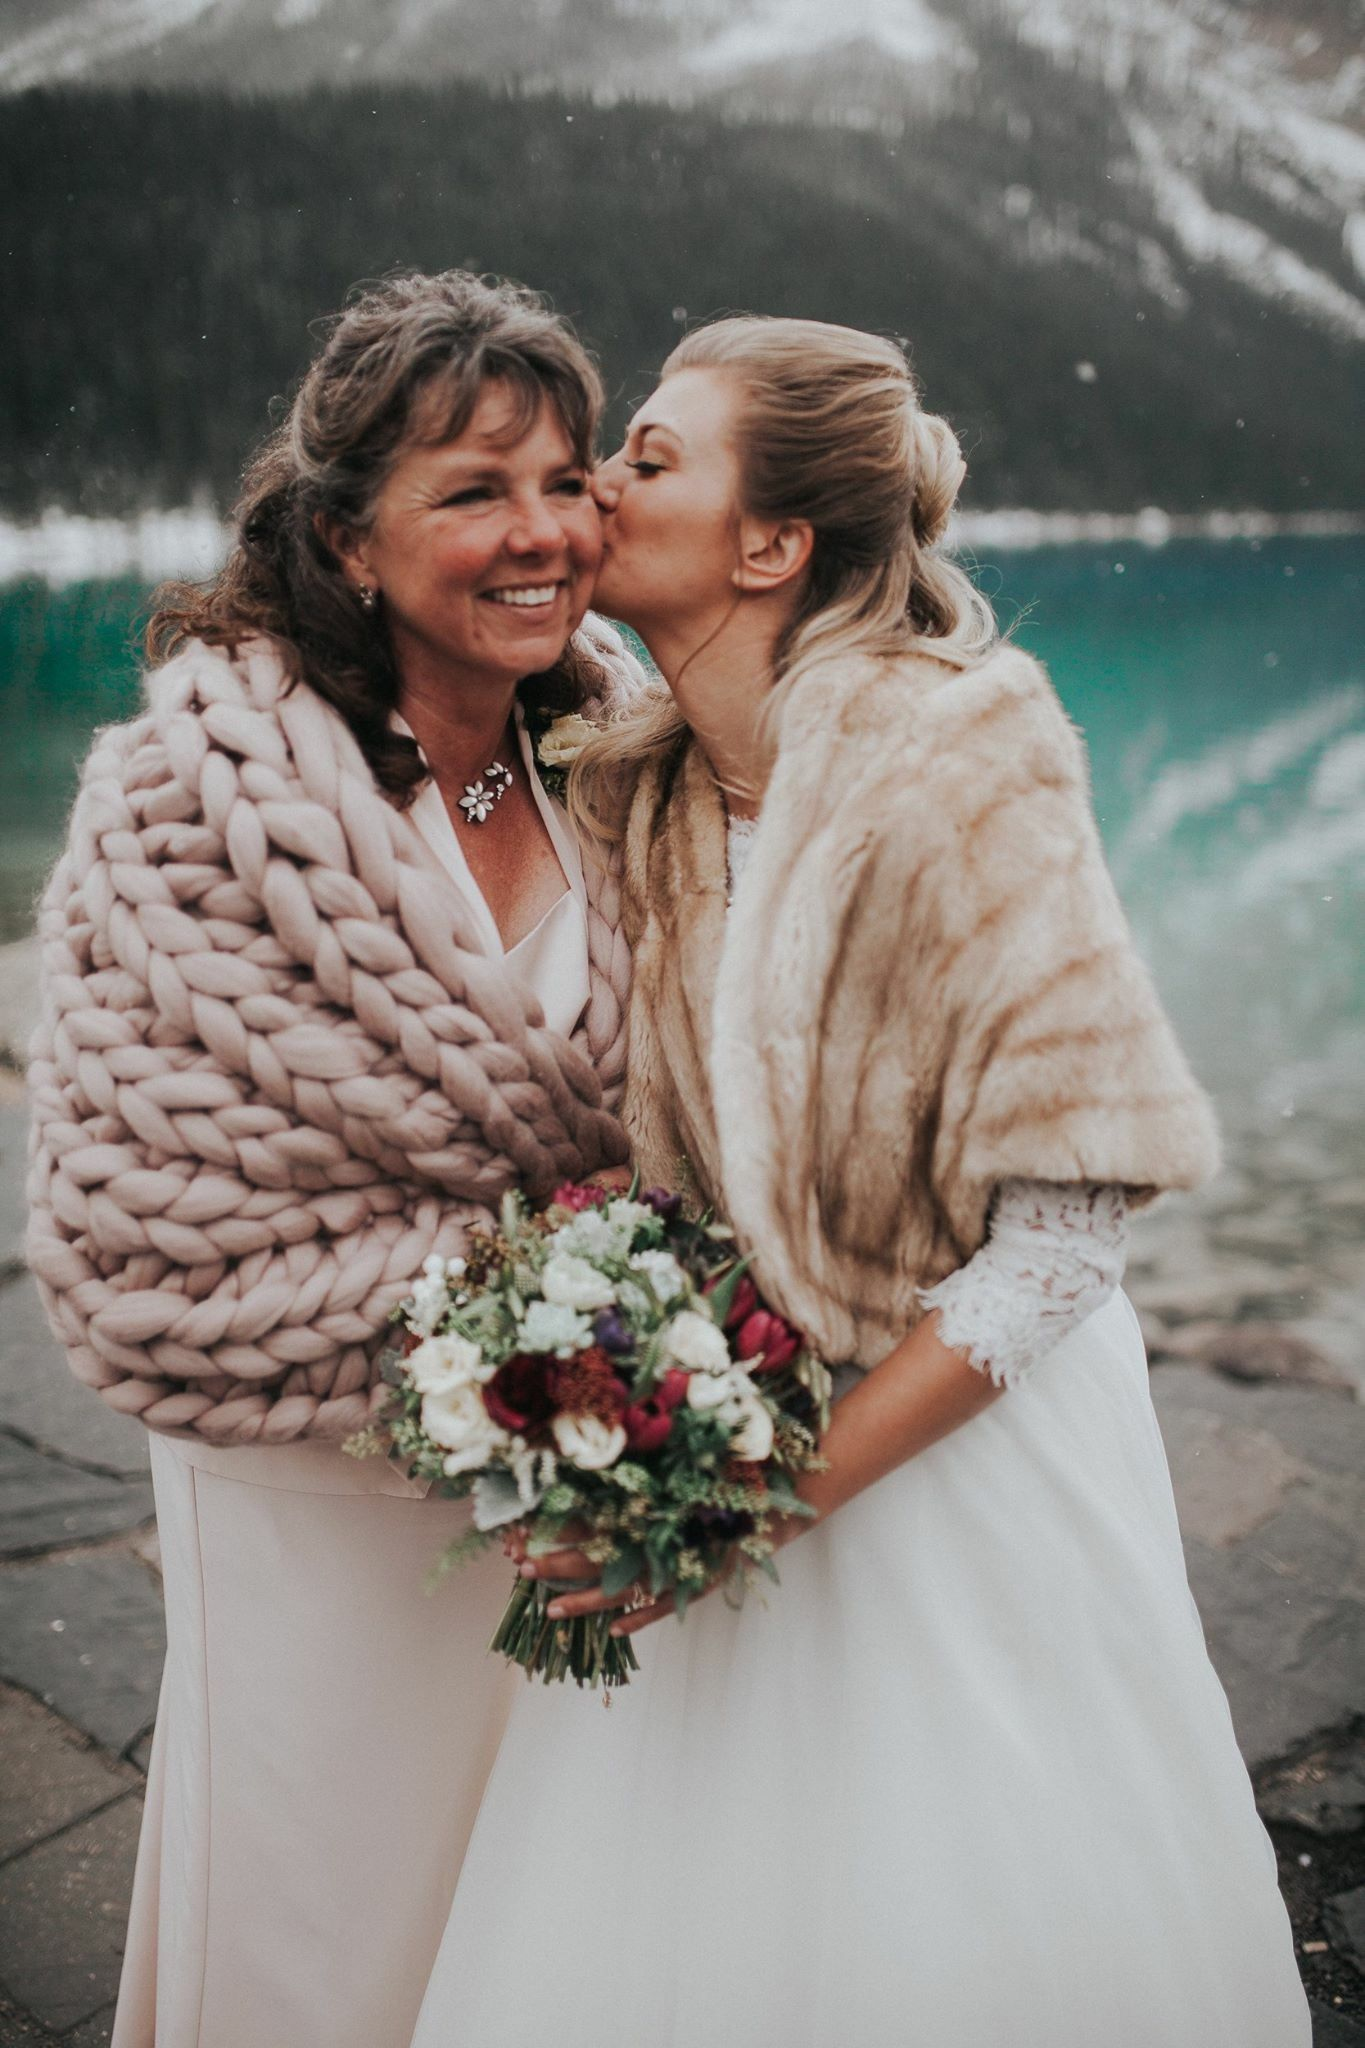 Mother Of The Bride Moments Winter Wedding Inspiration Winter Wedding Inspiration Winter Wedding Mother Of The Bride